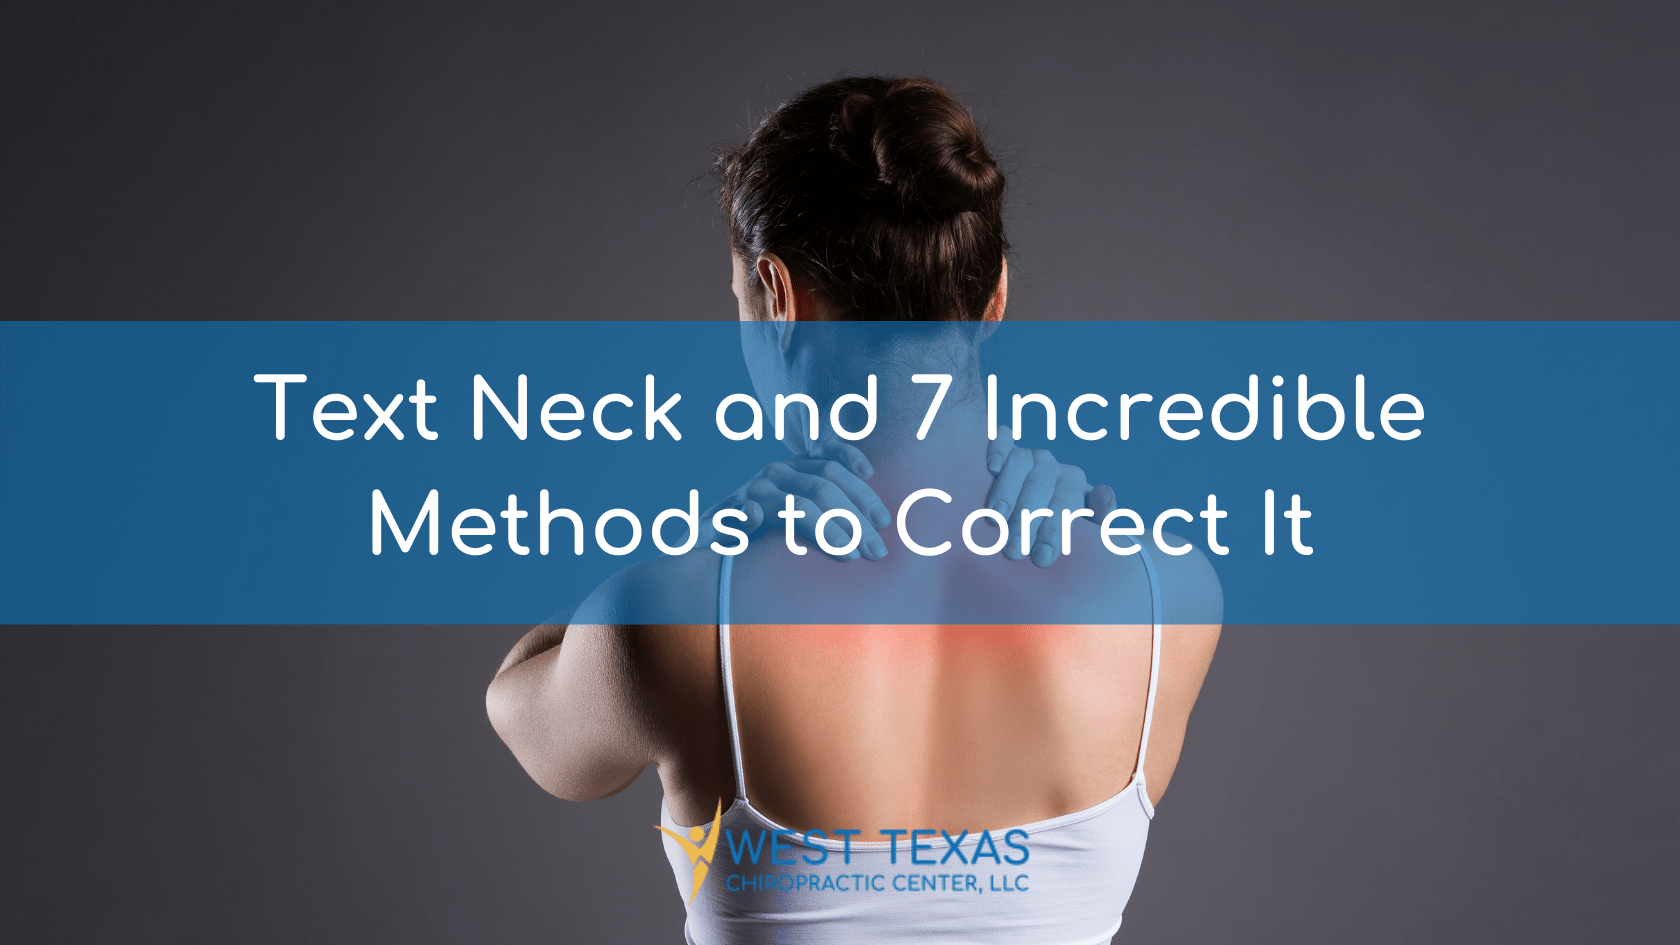 Text Neck and 7 Incredible Methods to Correct It